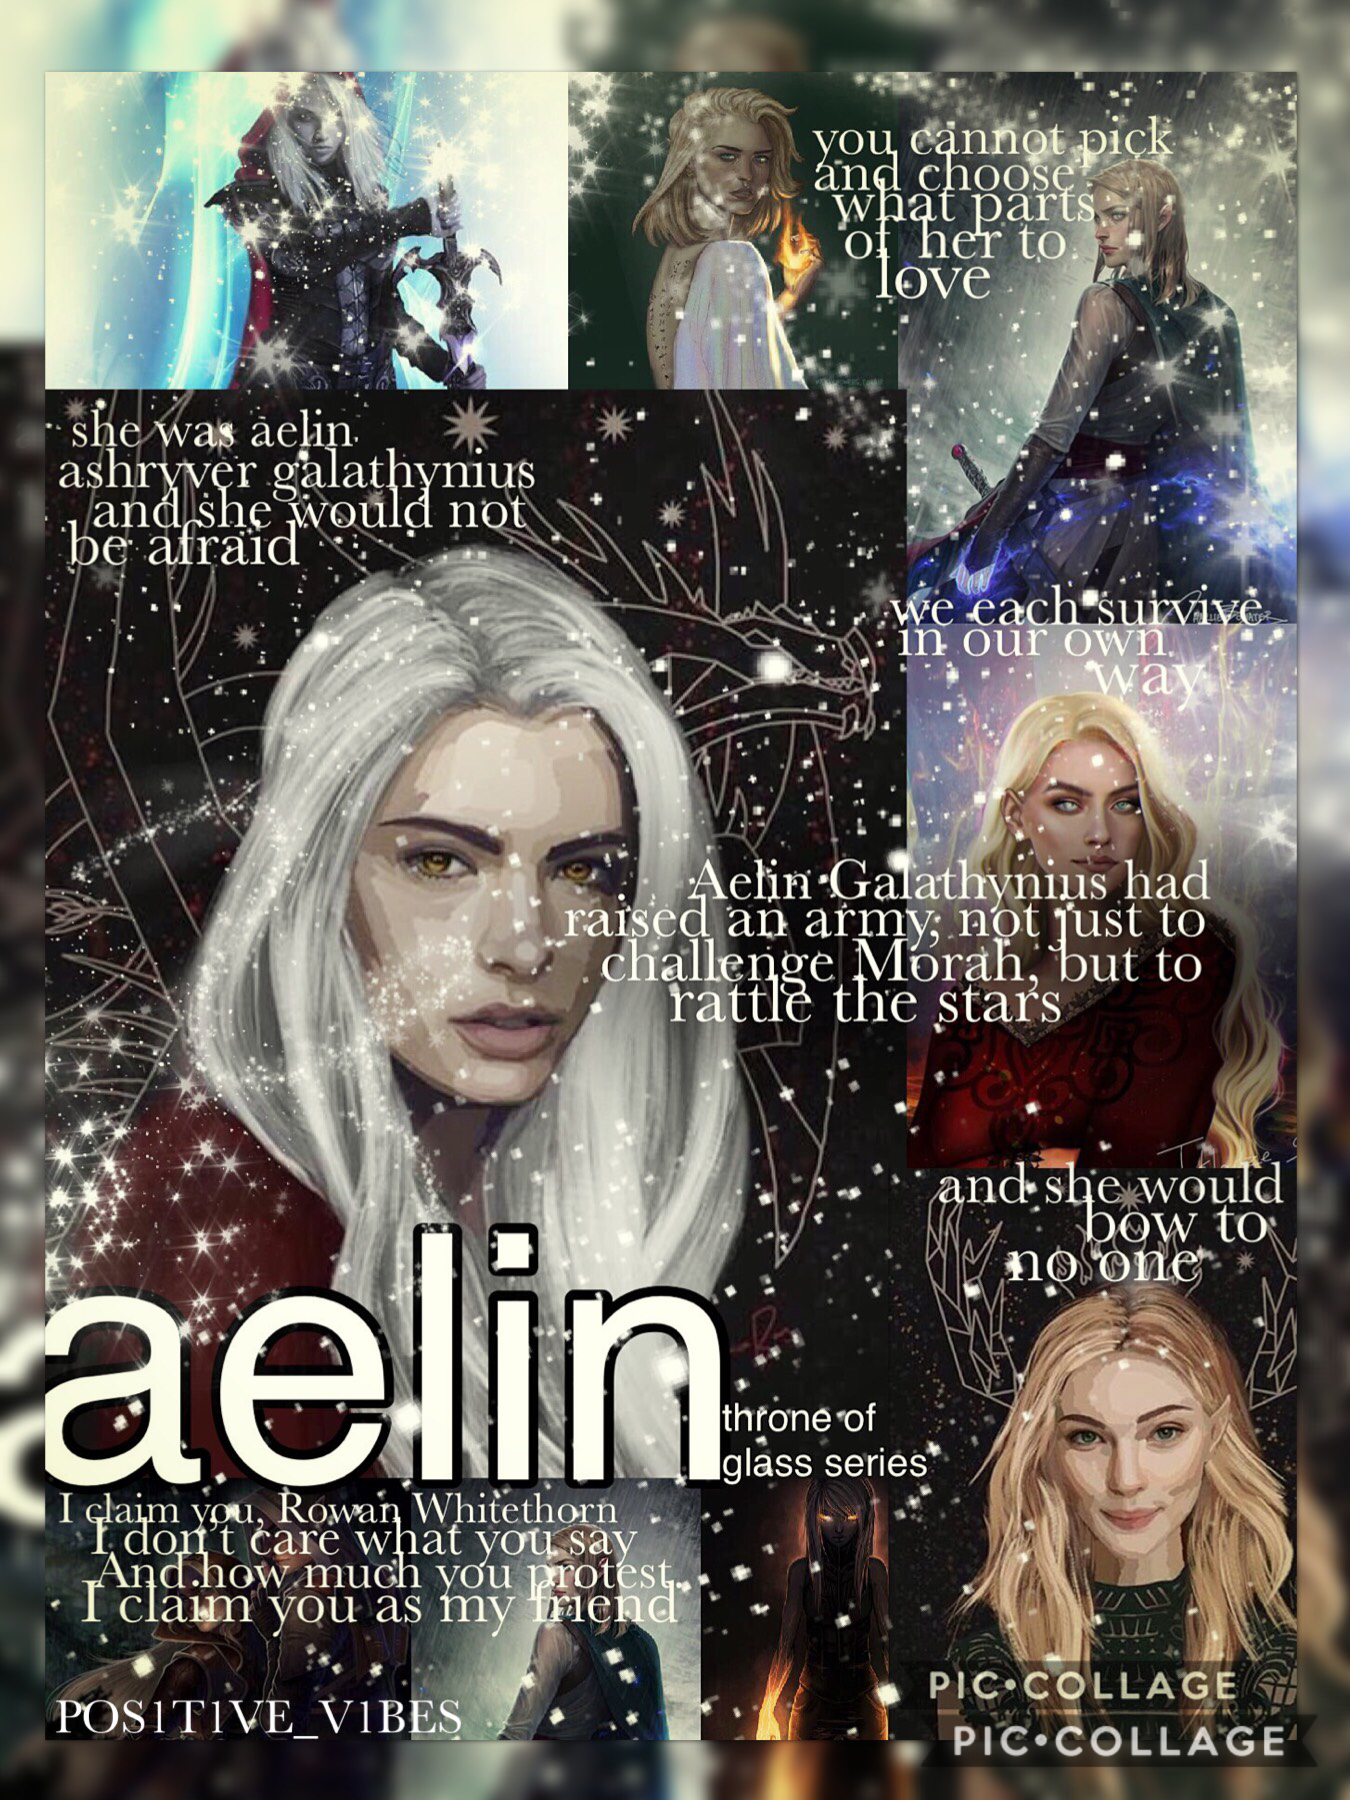 🔥Aelin Galathynius🔥Throne Of Glass Series - gO READ IT!1!🔥Track might start Monday or Tuesday it depends, & I have rehearsal on Tuesday so that's great🔥ahaha Aelins power is fire🔥ROWAELIN🔥 #PCONLY #AELIN #&ROWAN #FIRE #TRACK #REHEARSAL #ROWAELIN #THRONE #